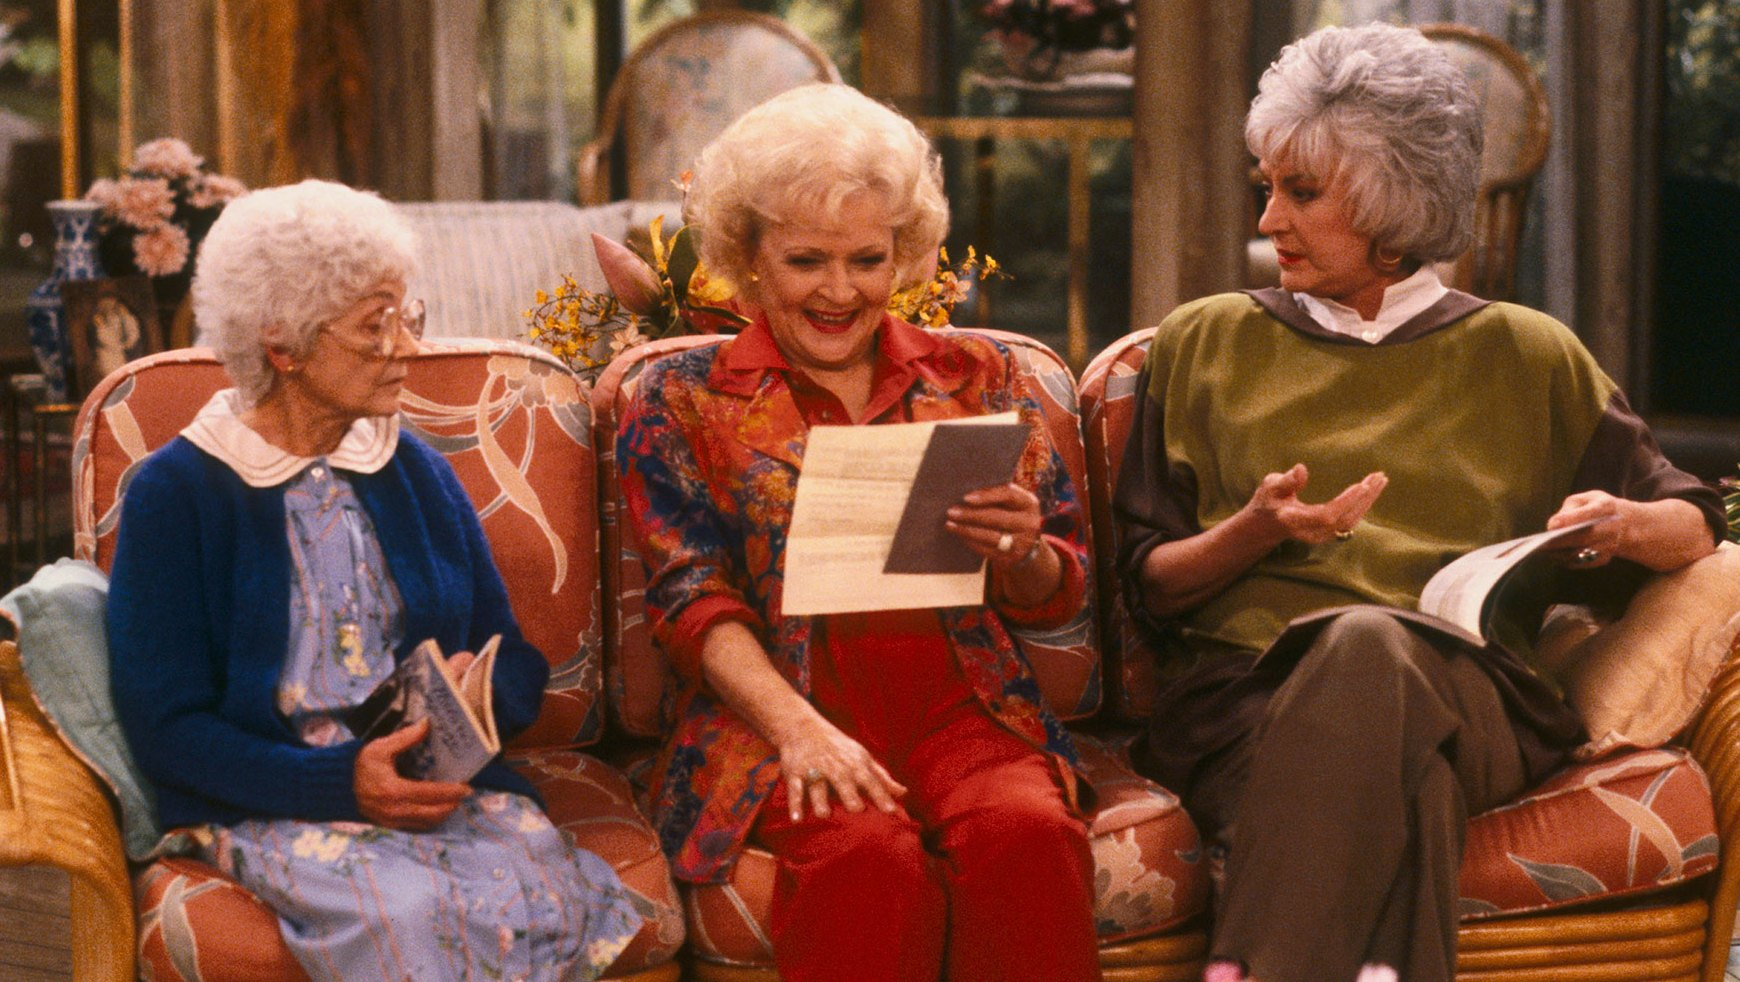 THE GOLDEN GIRLS - 9/24/85 - 9/24/92, ESTELLE GETTY, BETTY WHITE, and BEA ARTHUR